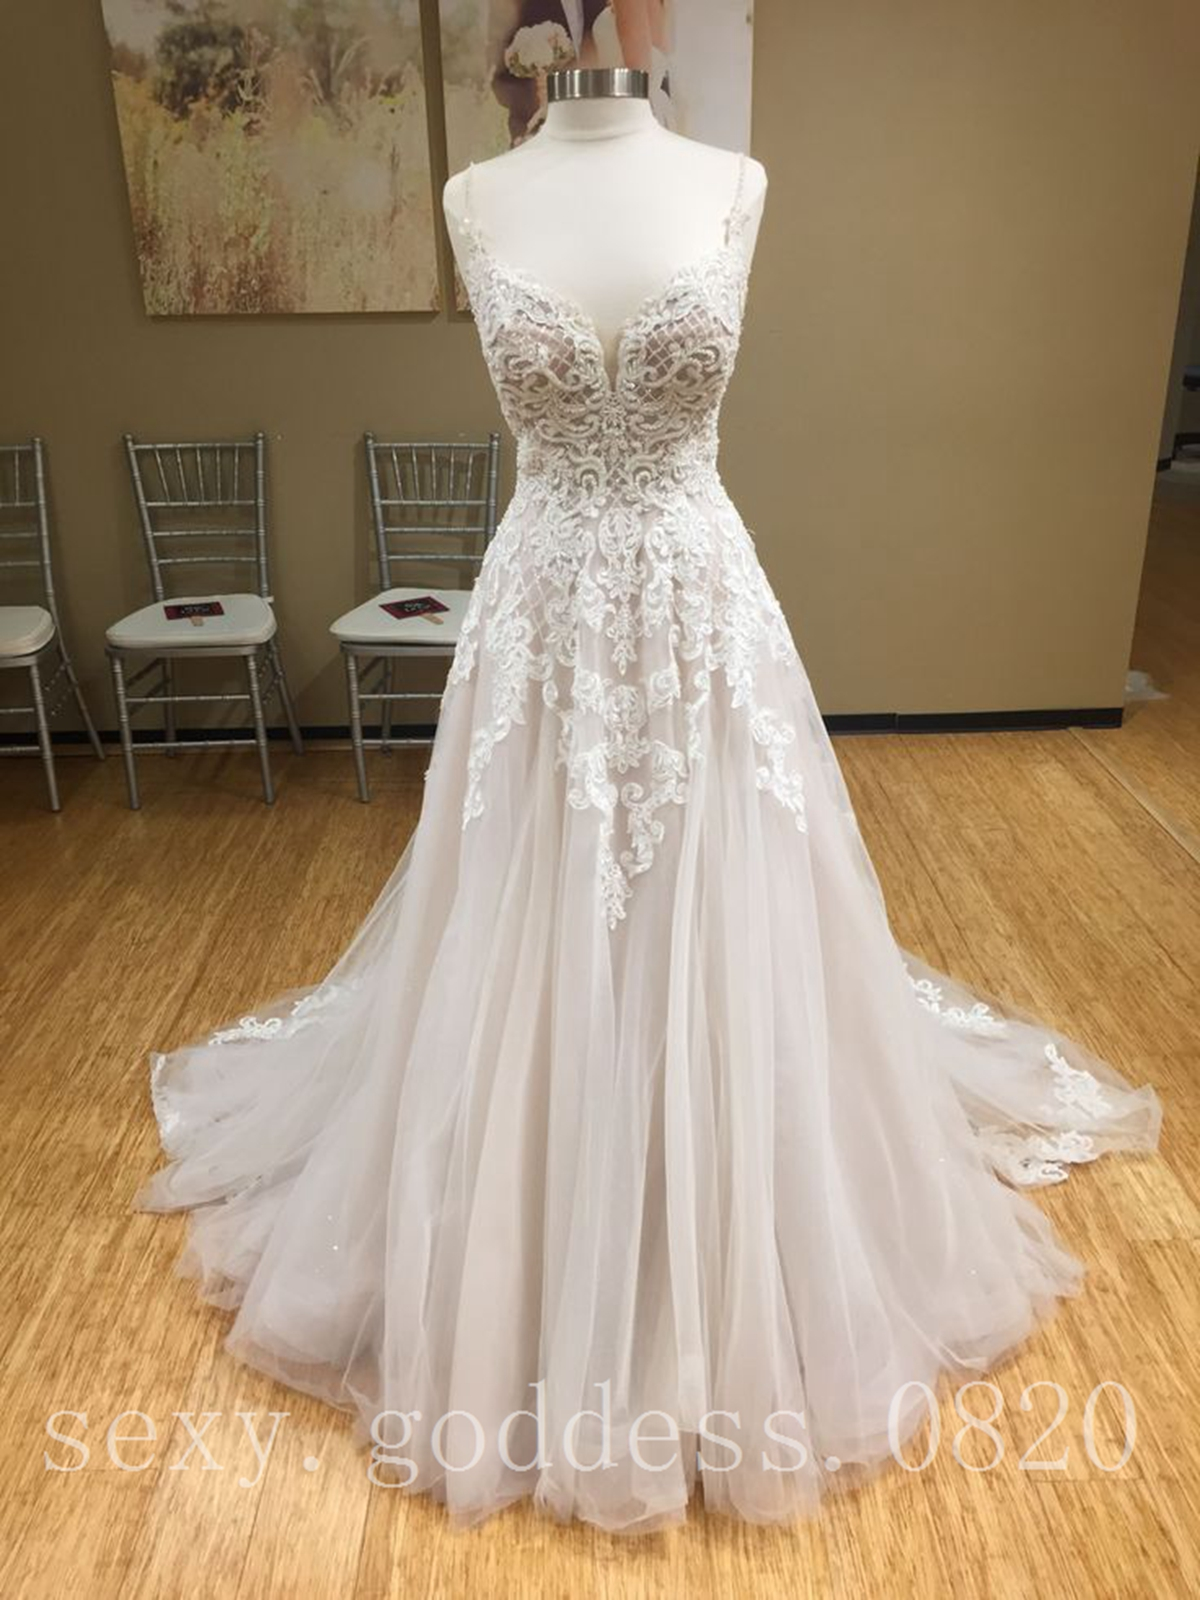 Spaghetti Straps Plunging V Neck Beach Wedding Dress Lace Appliques